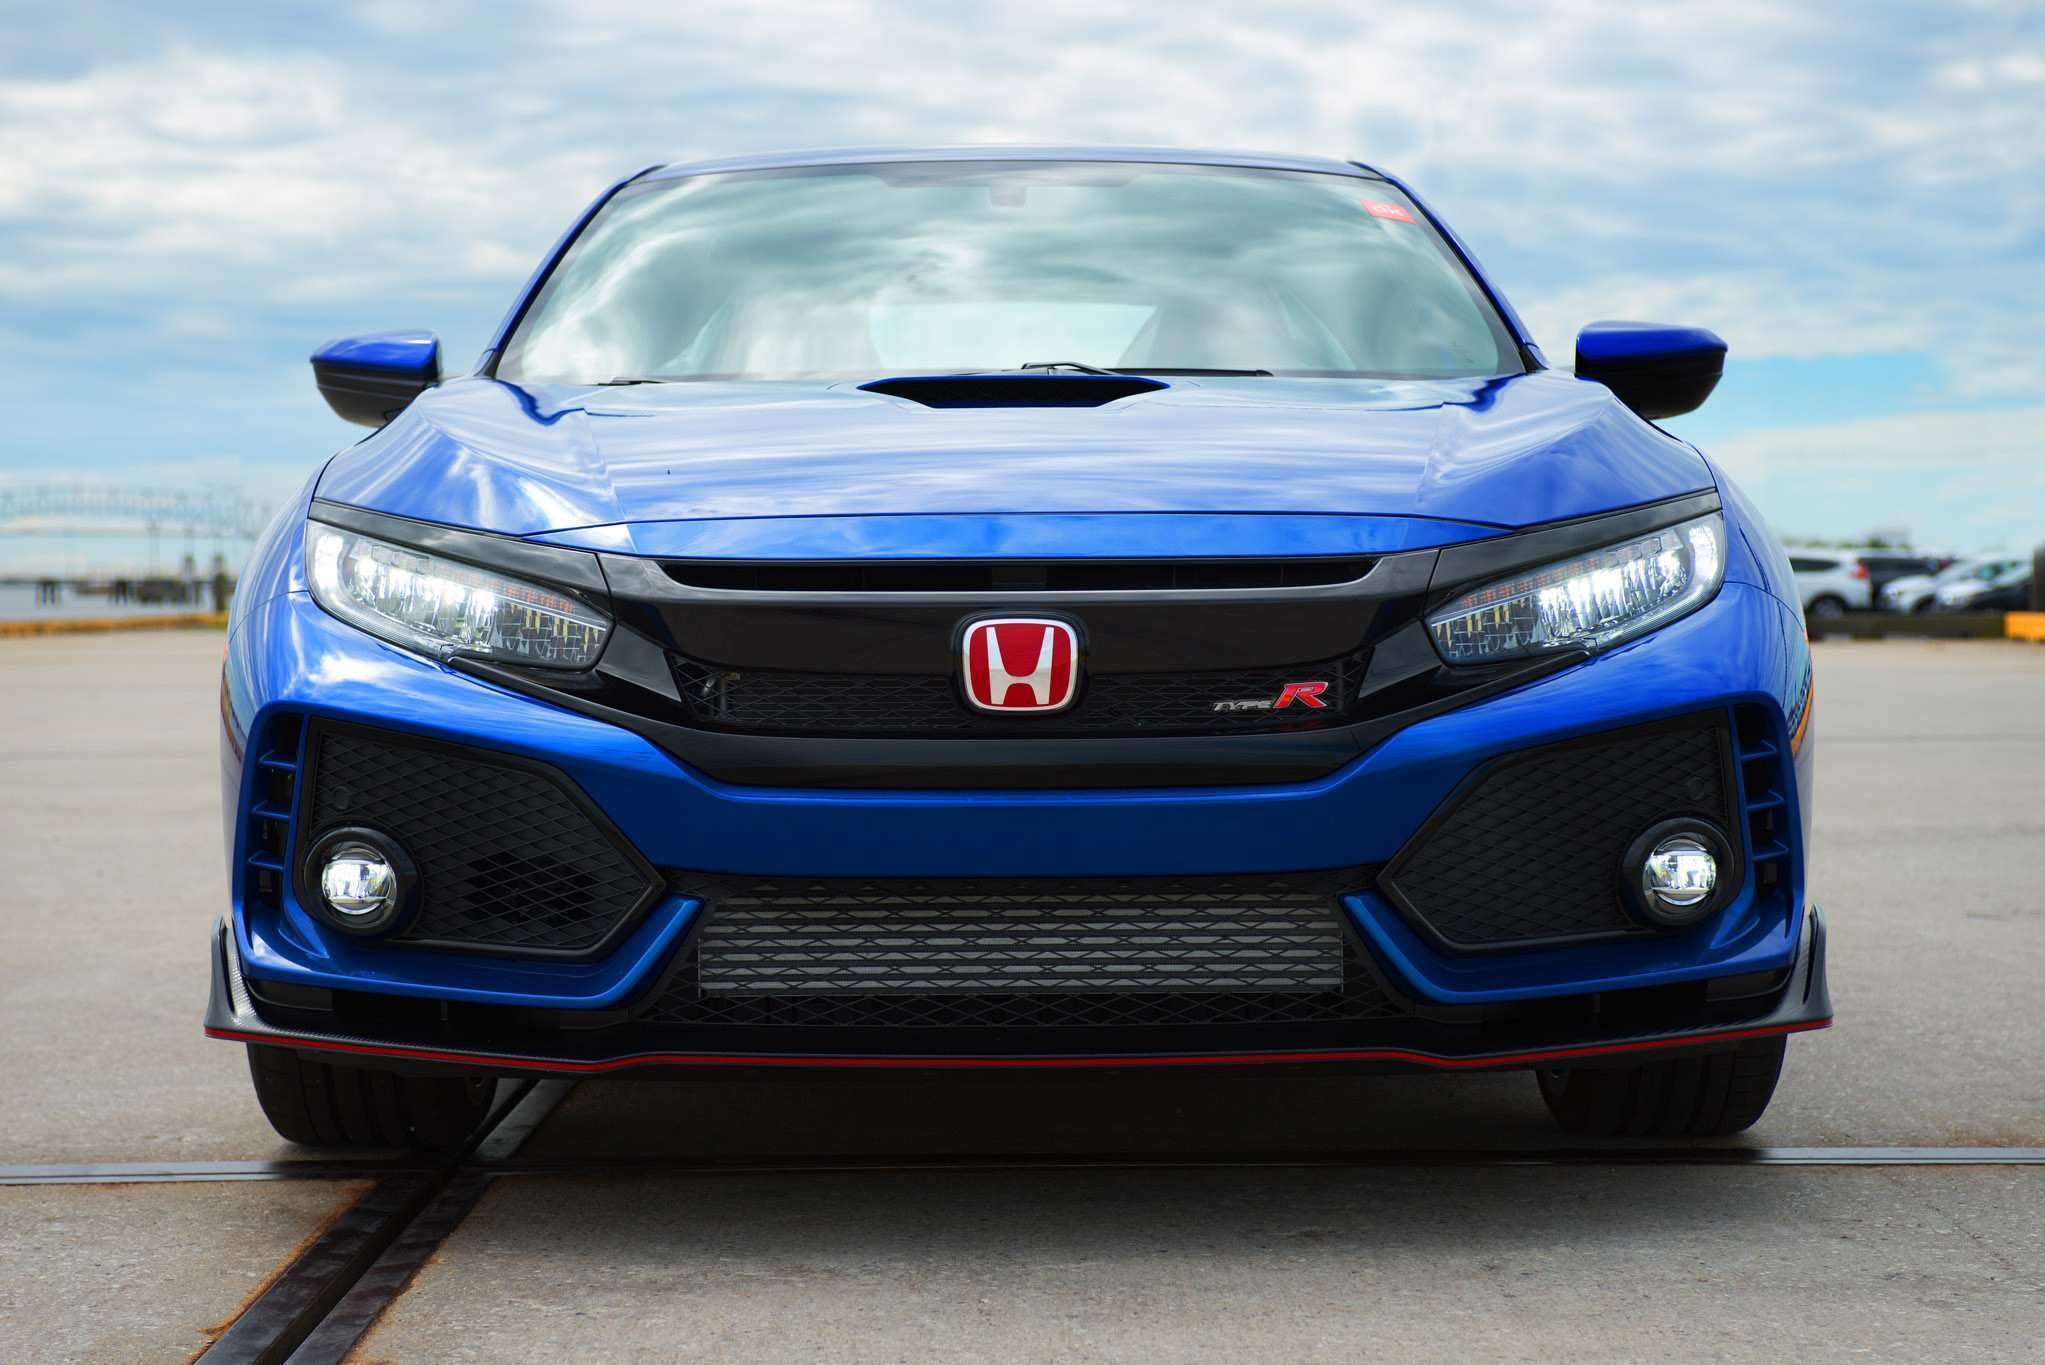 91 New 2020 Honda Civic Si Type R Model